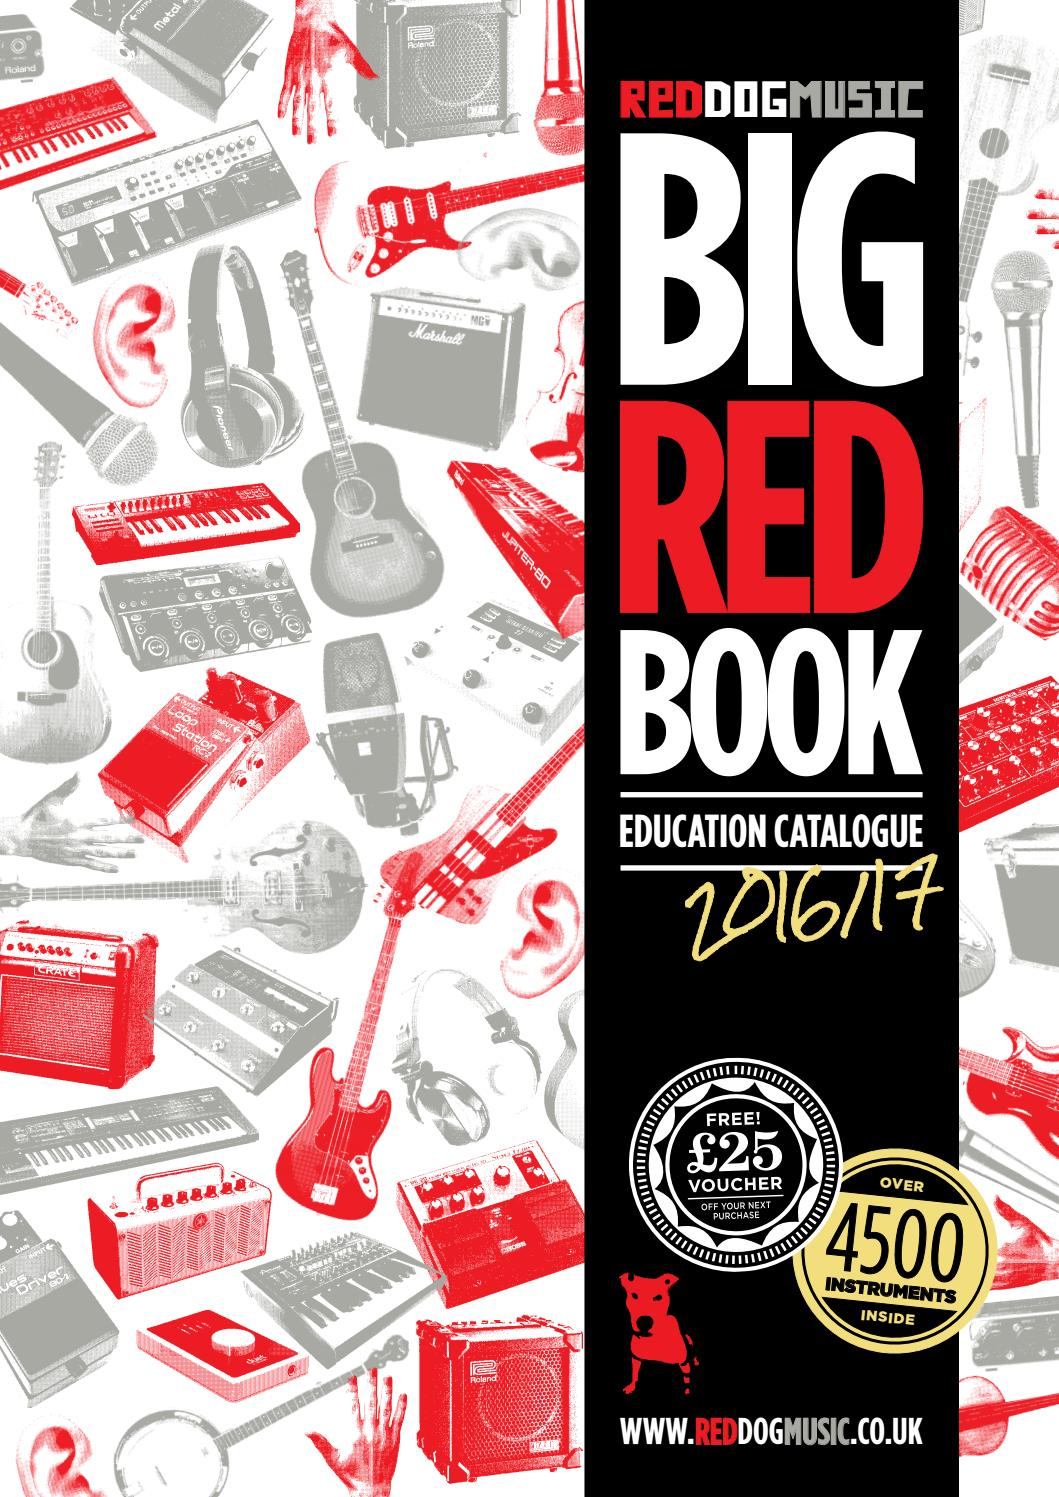 Red Dog Music Education Catalogue 2016 By Issuu Jp 6v Lead Acid Battery Charger Model Shop Leeds